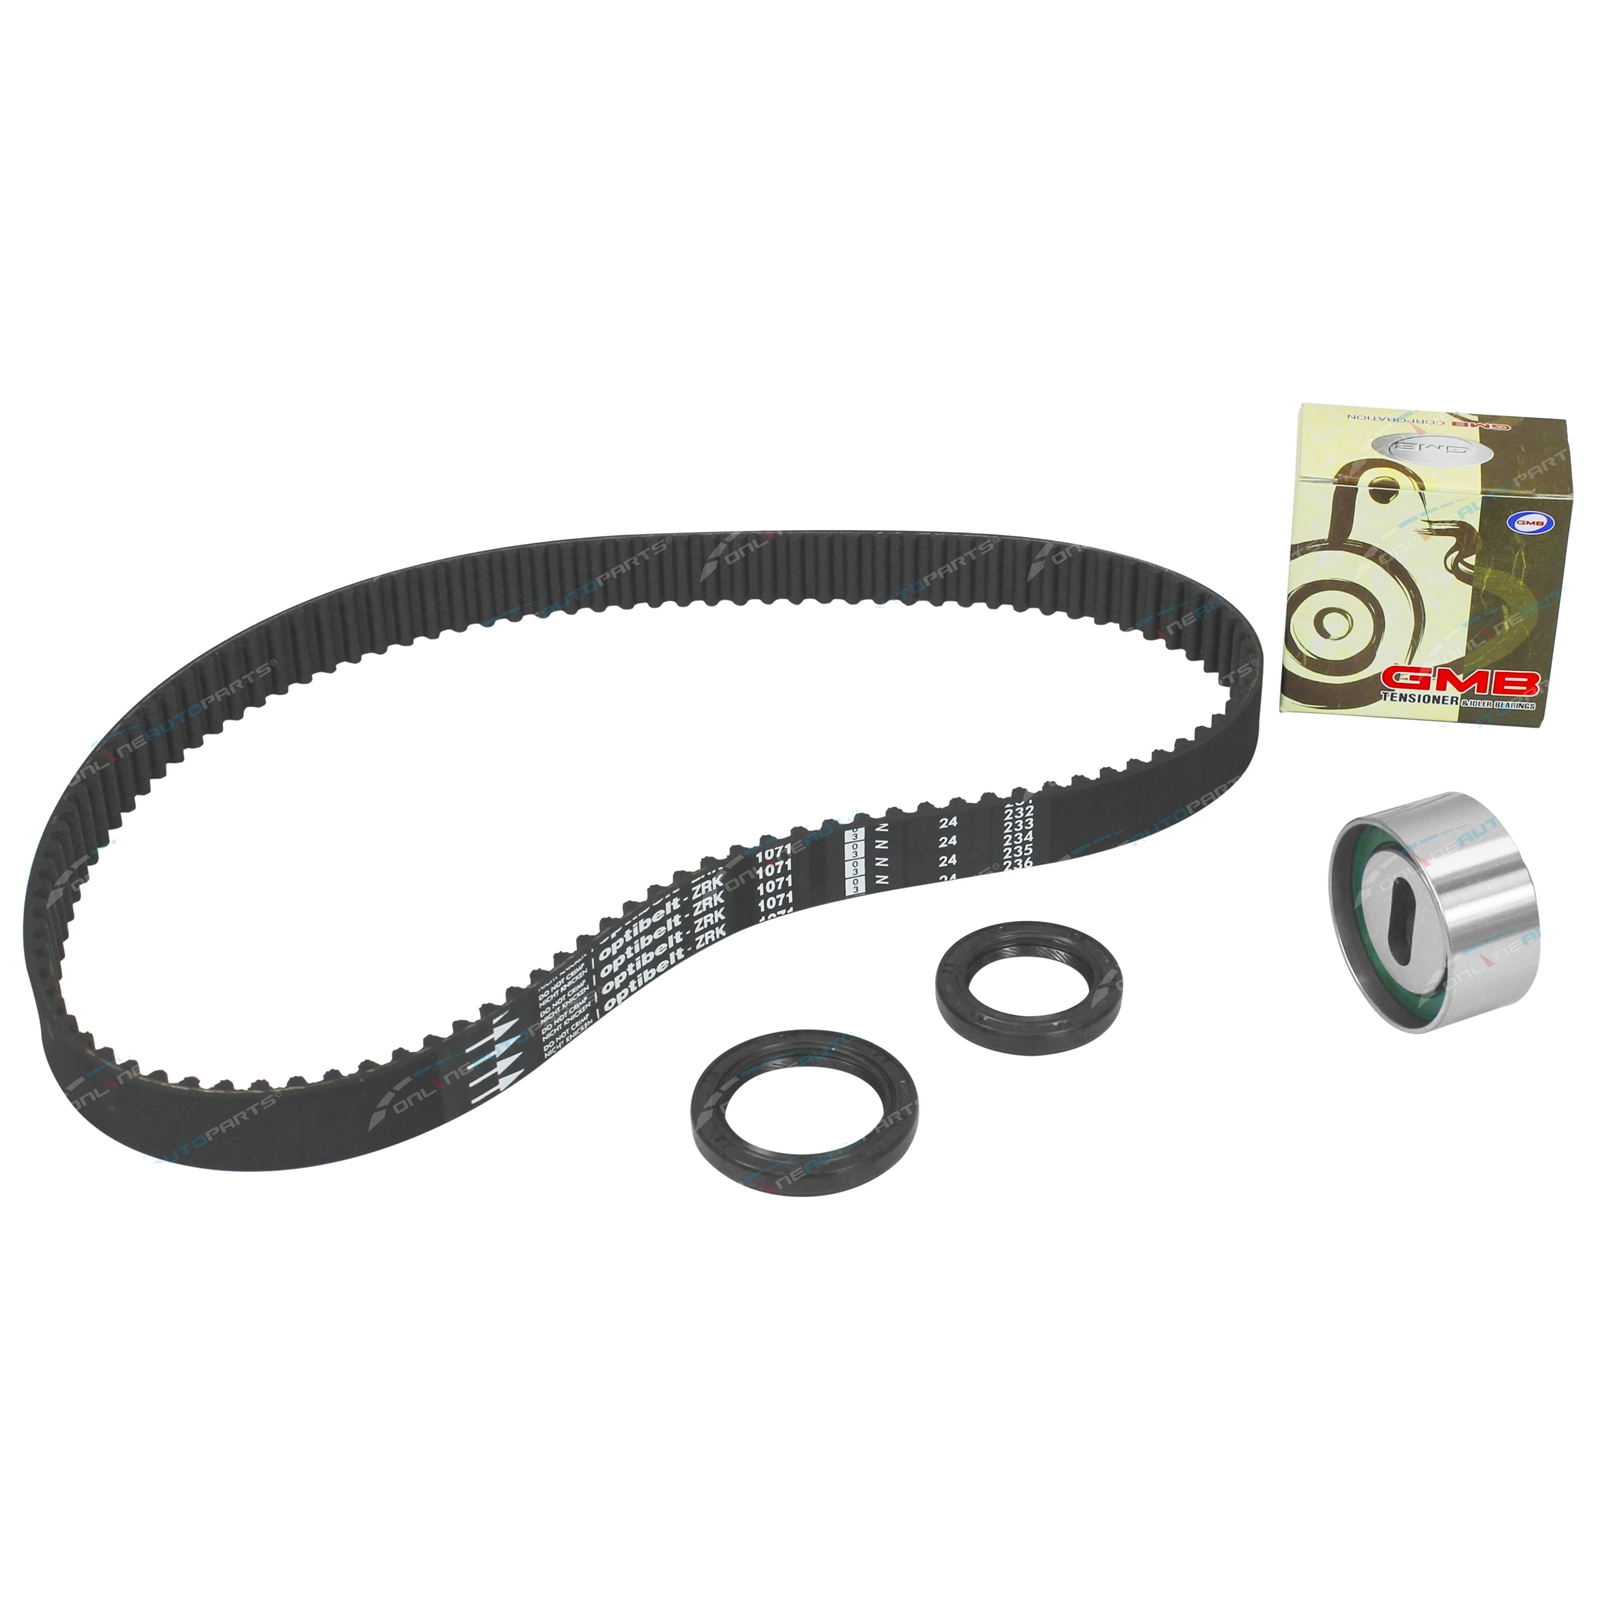 Timing Belt + Tensioner Kit 323 BF BG 1985-96 SOHC 1.6L 1597cc 4cyl B6 B6Y Carb + EFI Engine - Mazda